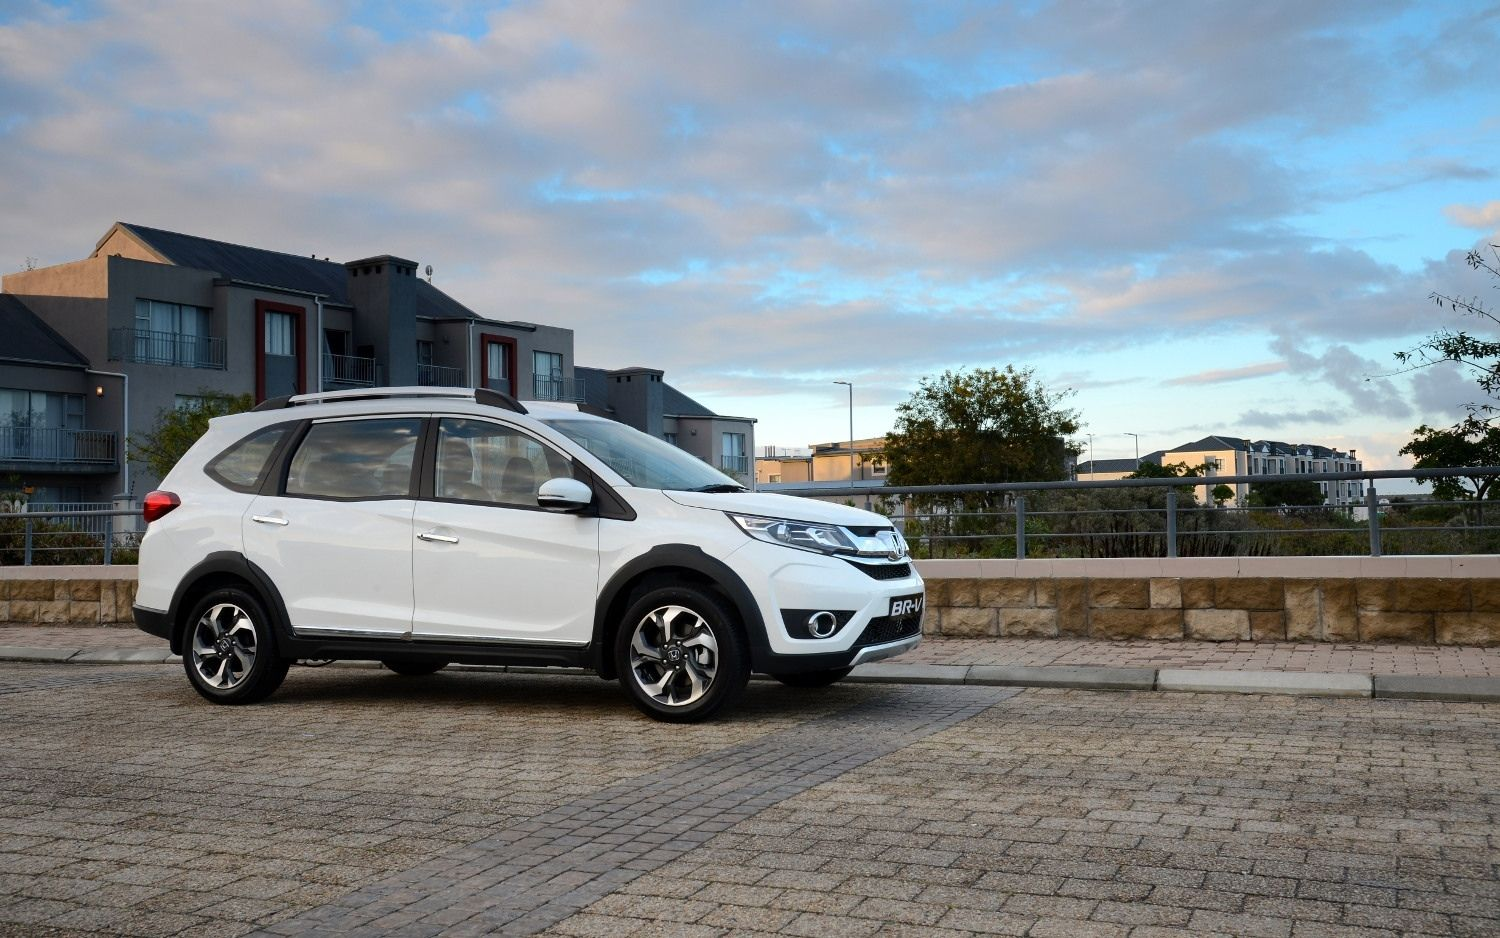 2020 Honda Brv Review (With images) Honda, Suv cars, New